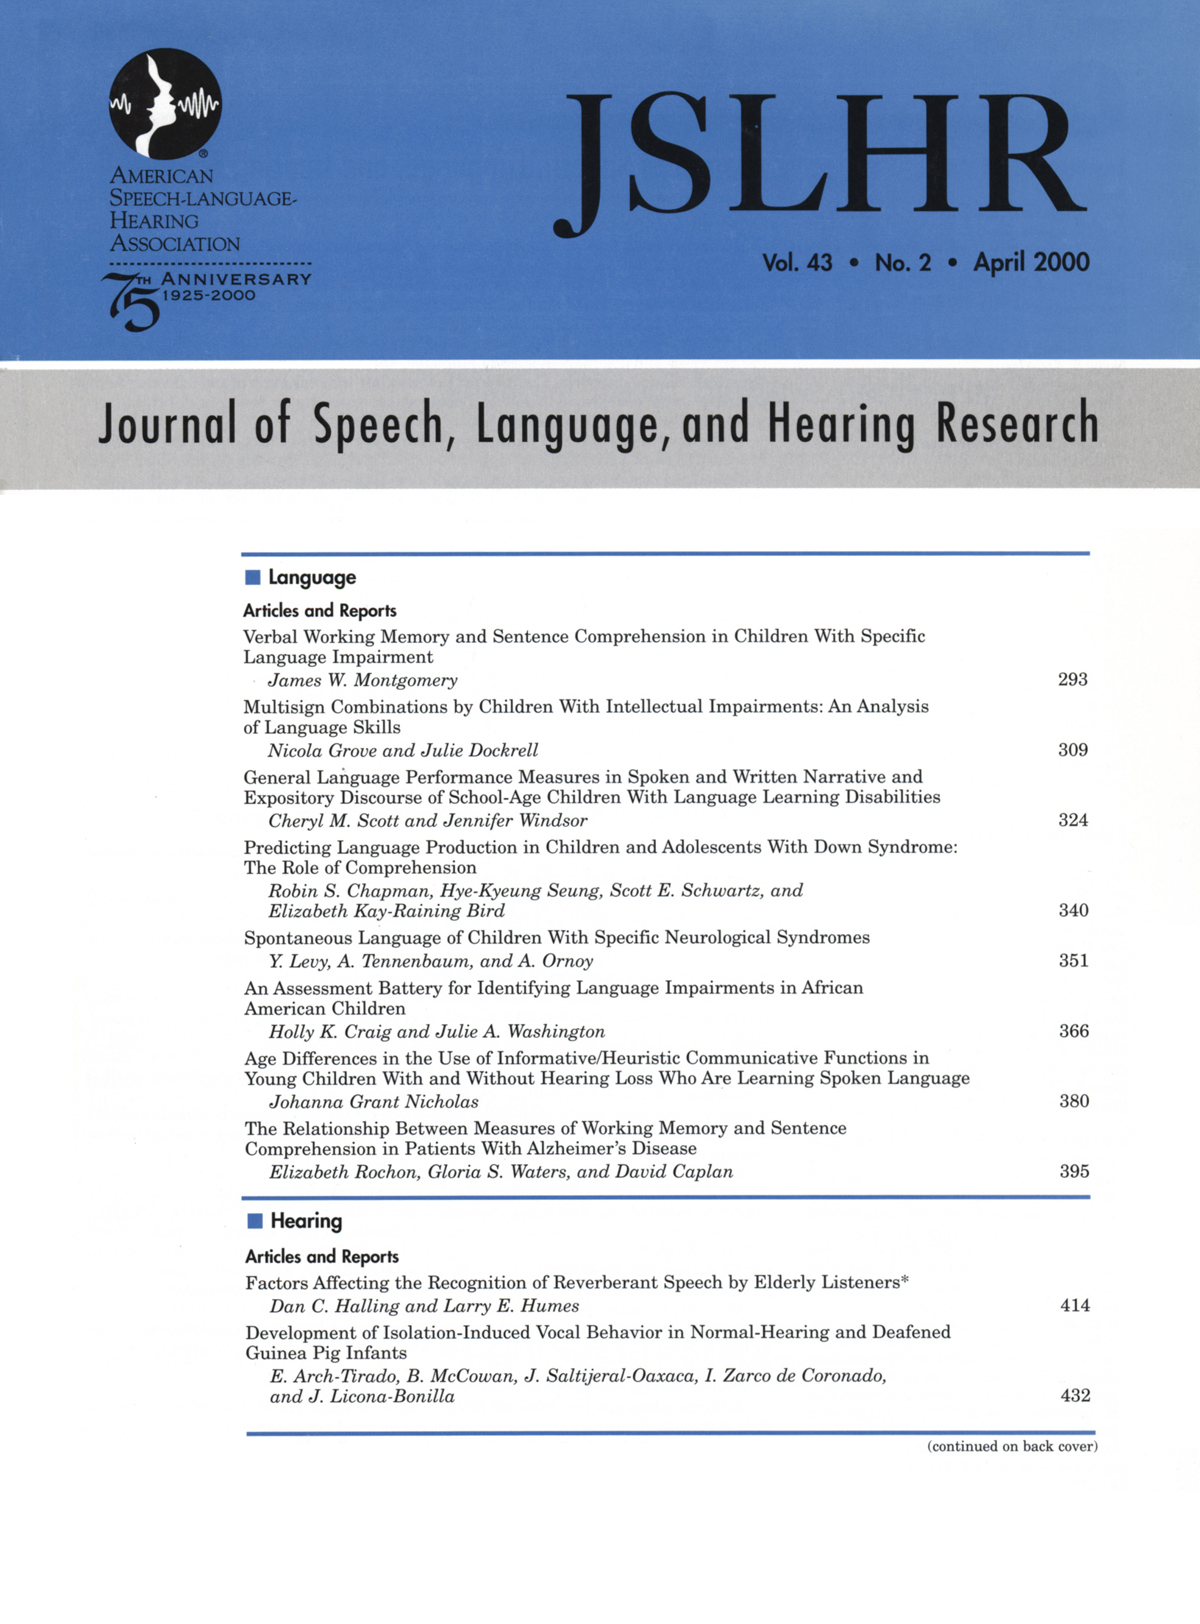 Jew Detector: General Language Performance Measures In Spoken And